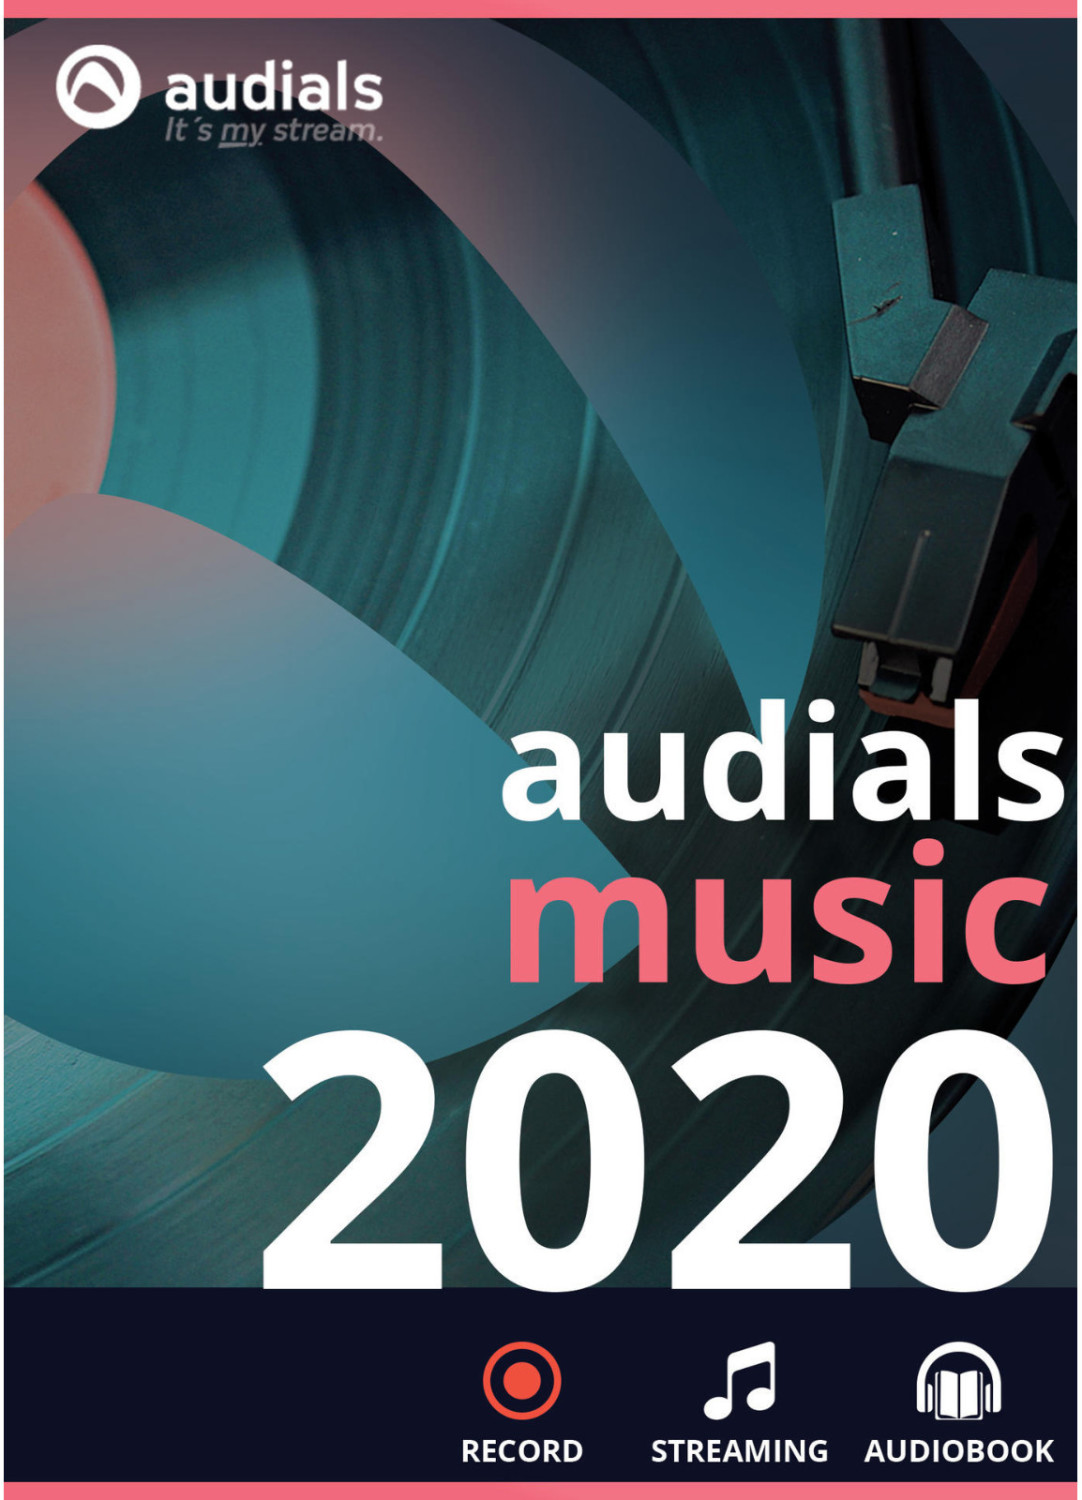 Image of Audials Music 2020